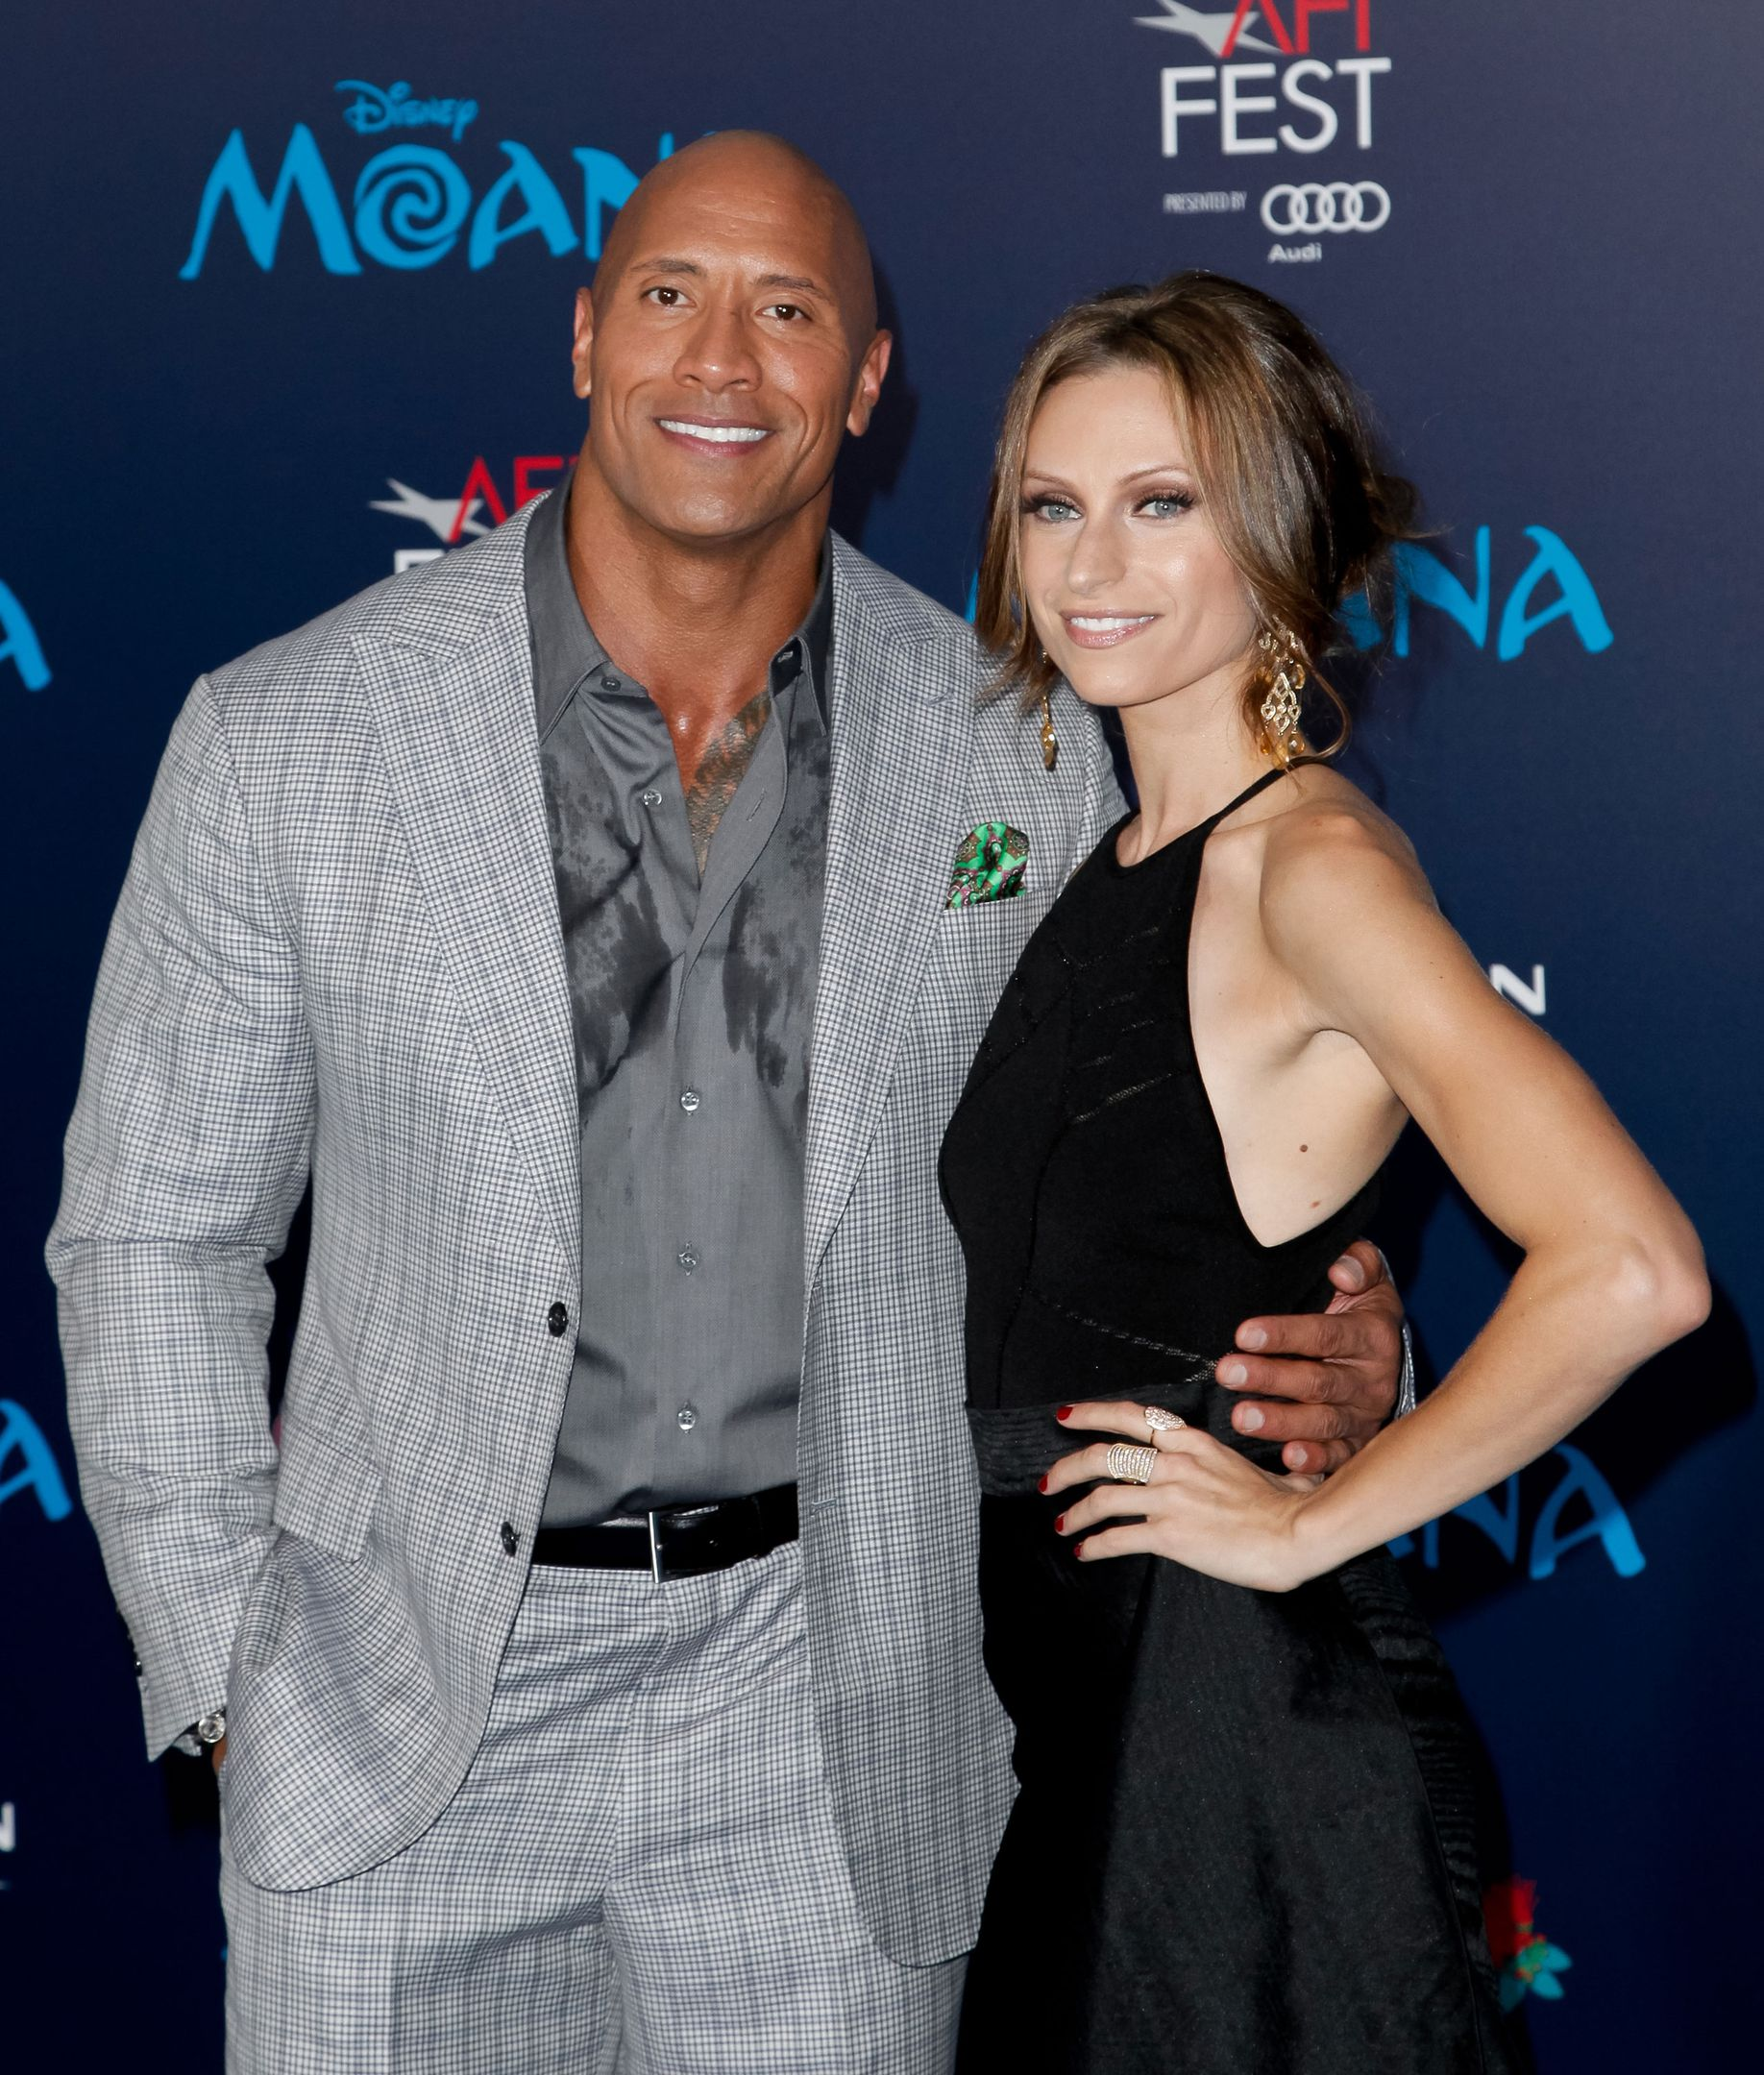 Dwayne Johnson and partner expecting second daughter